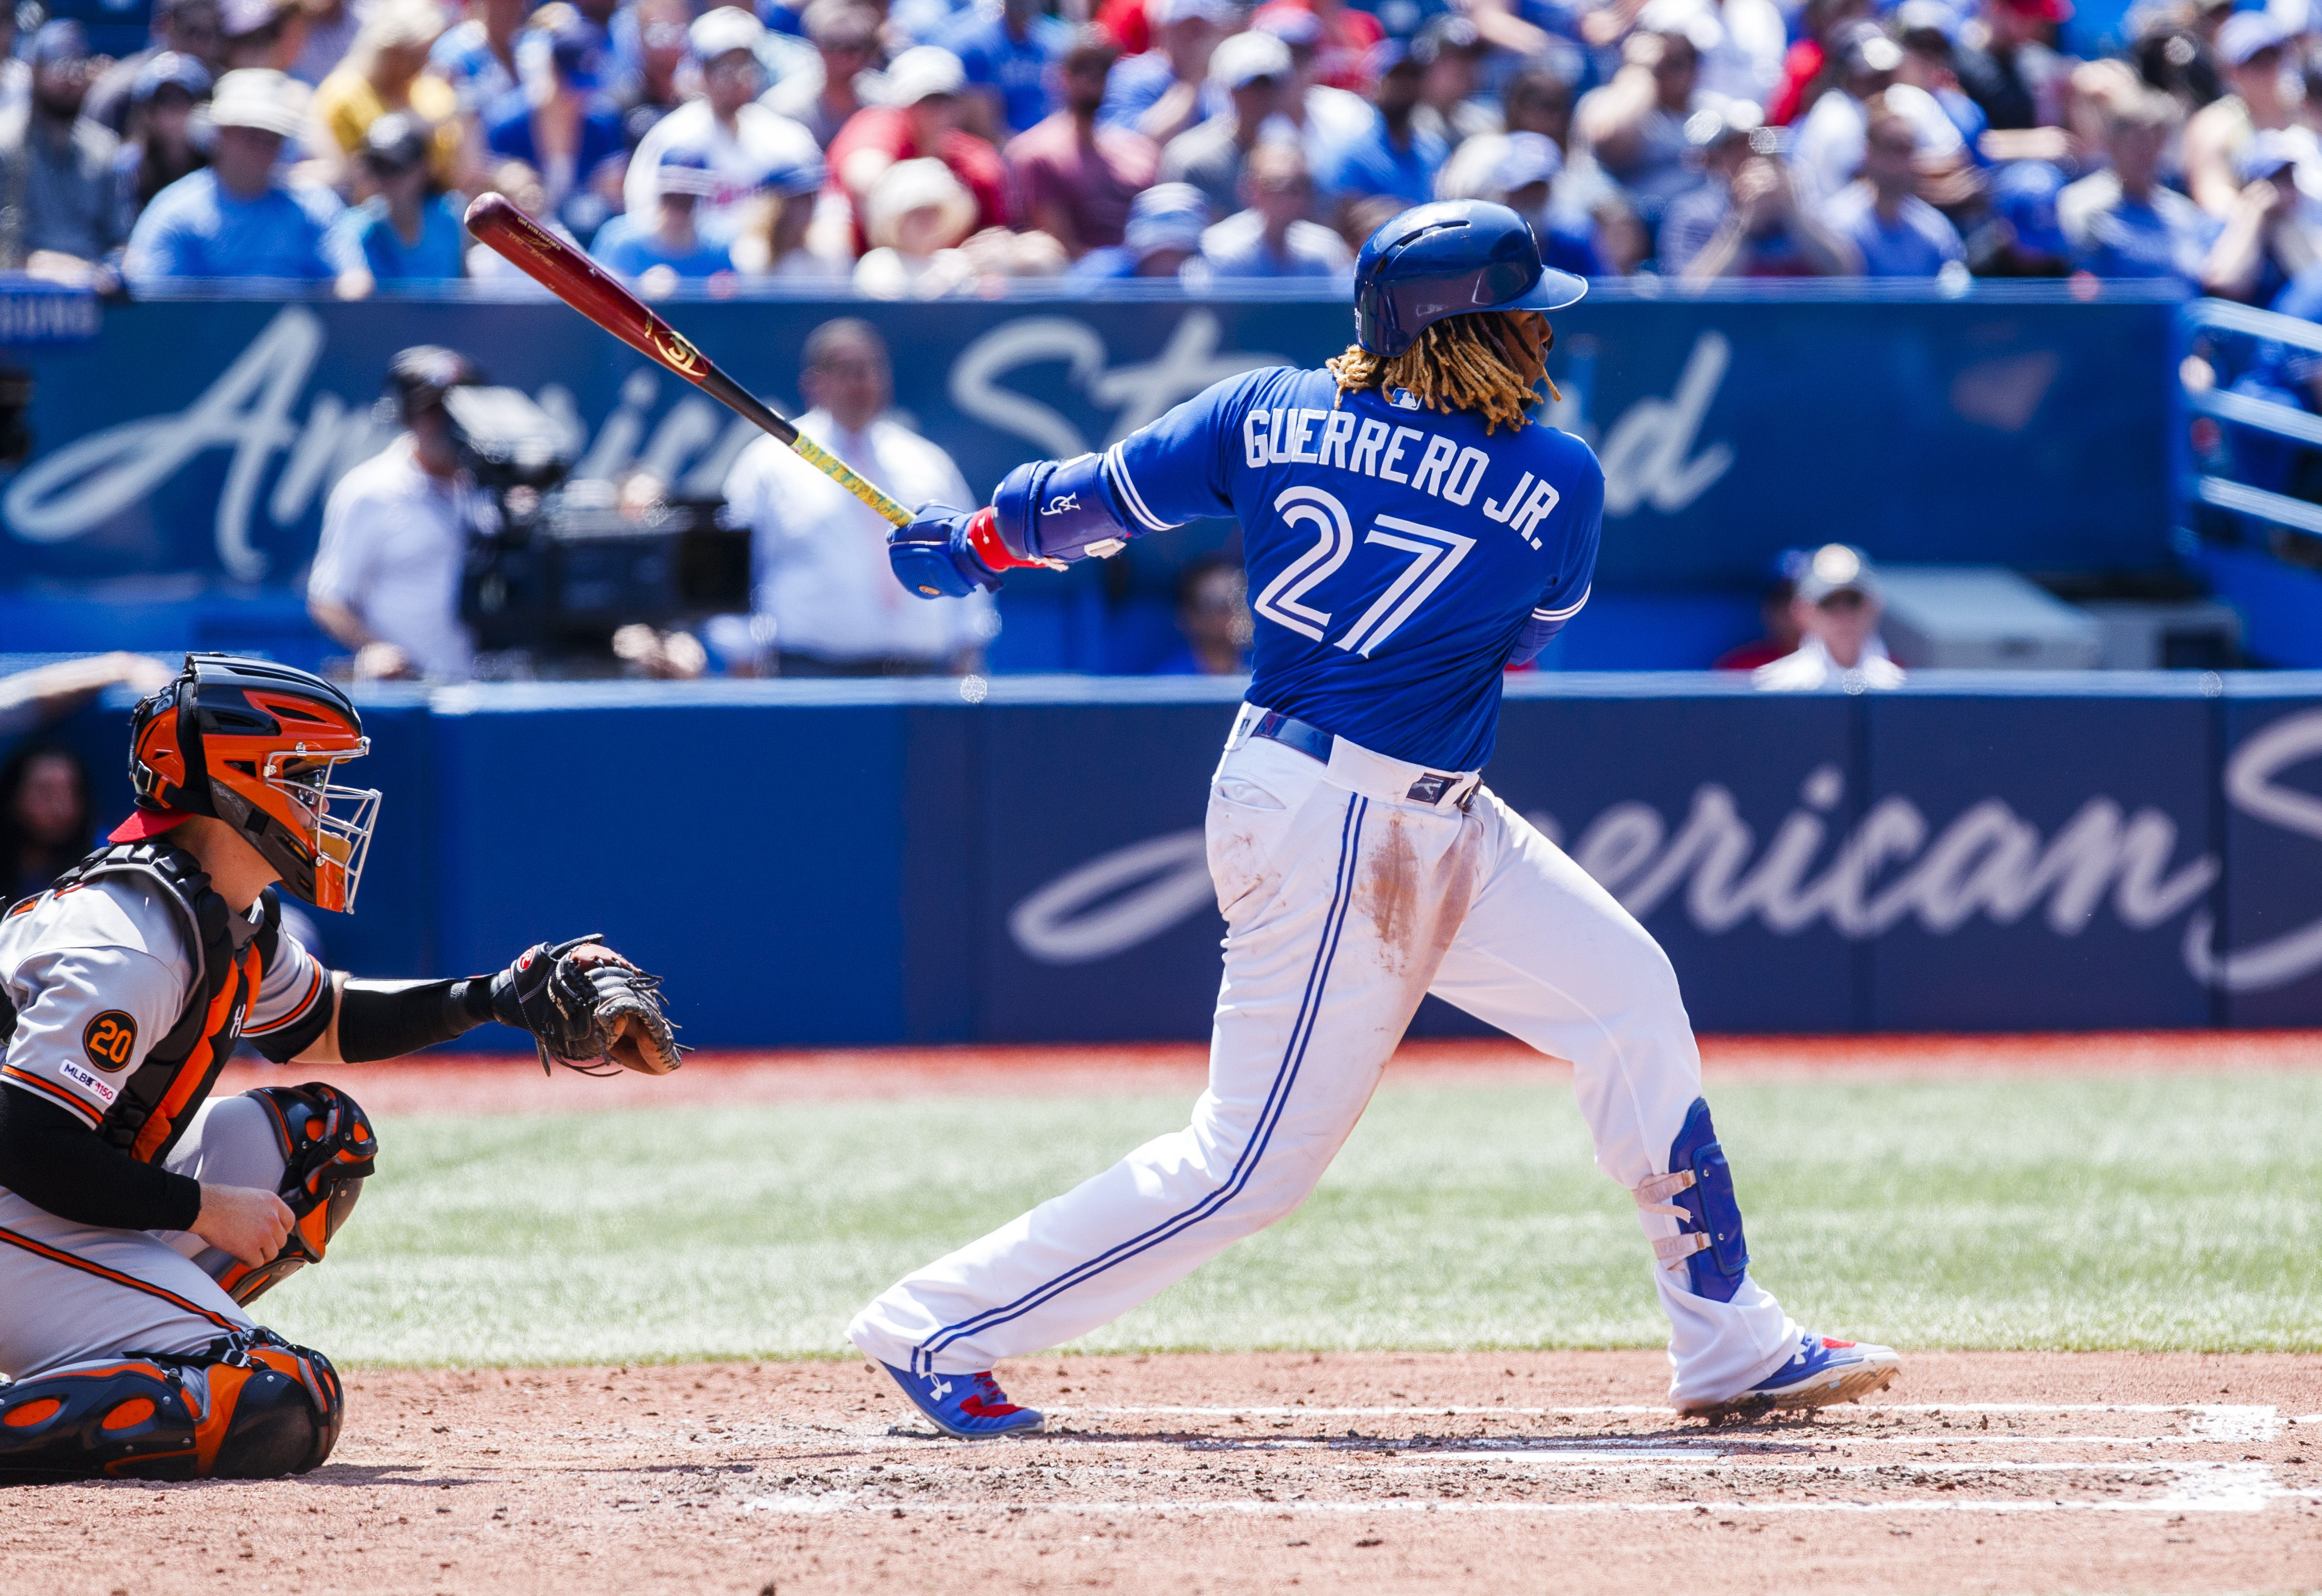 Blue Jays beat Orioles 6-1 behind Lourdes Gurriel Jr. and Trent Thornton to avoid series sweep